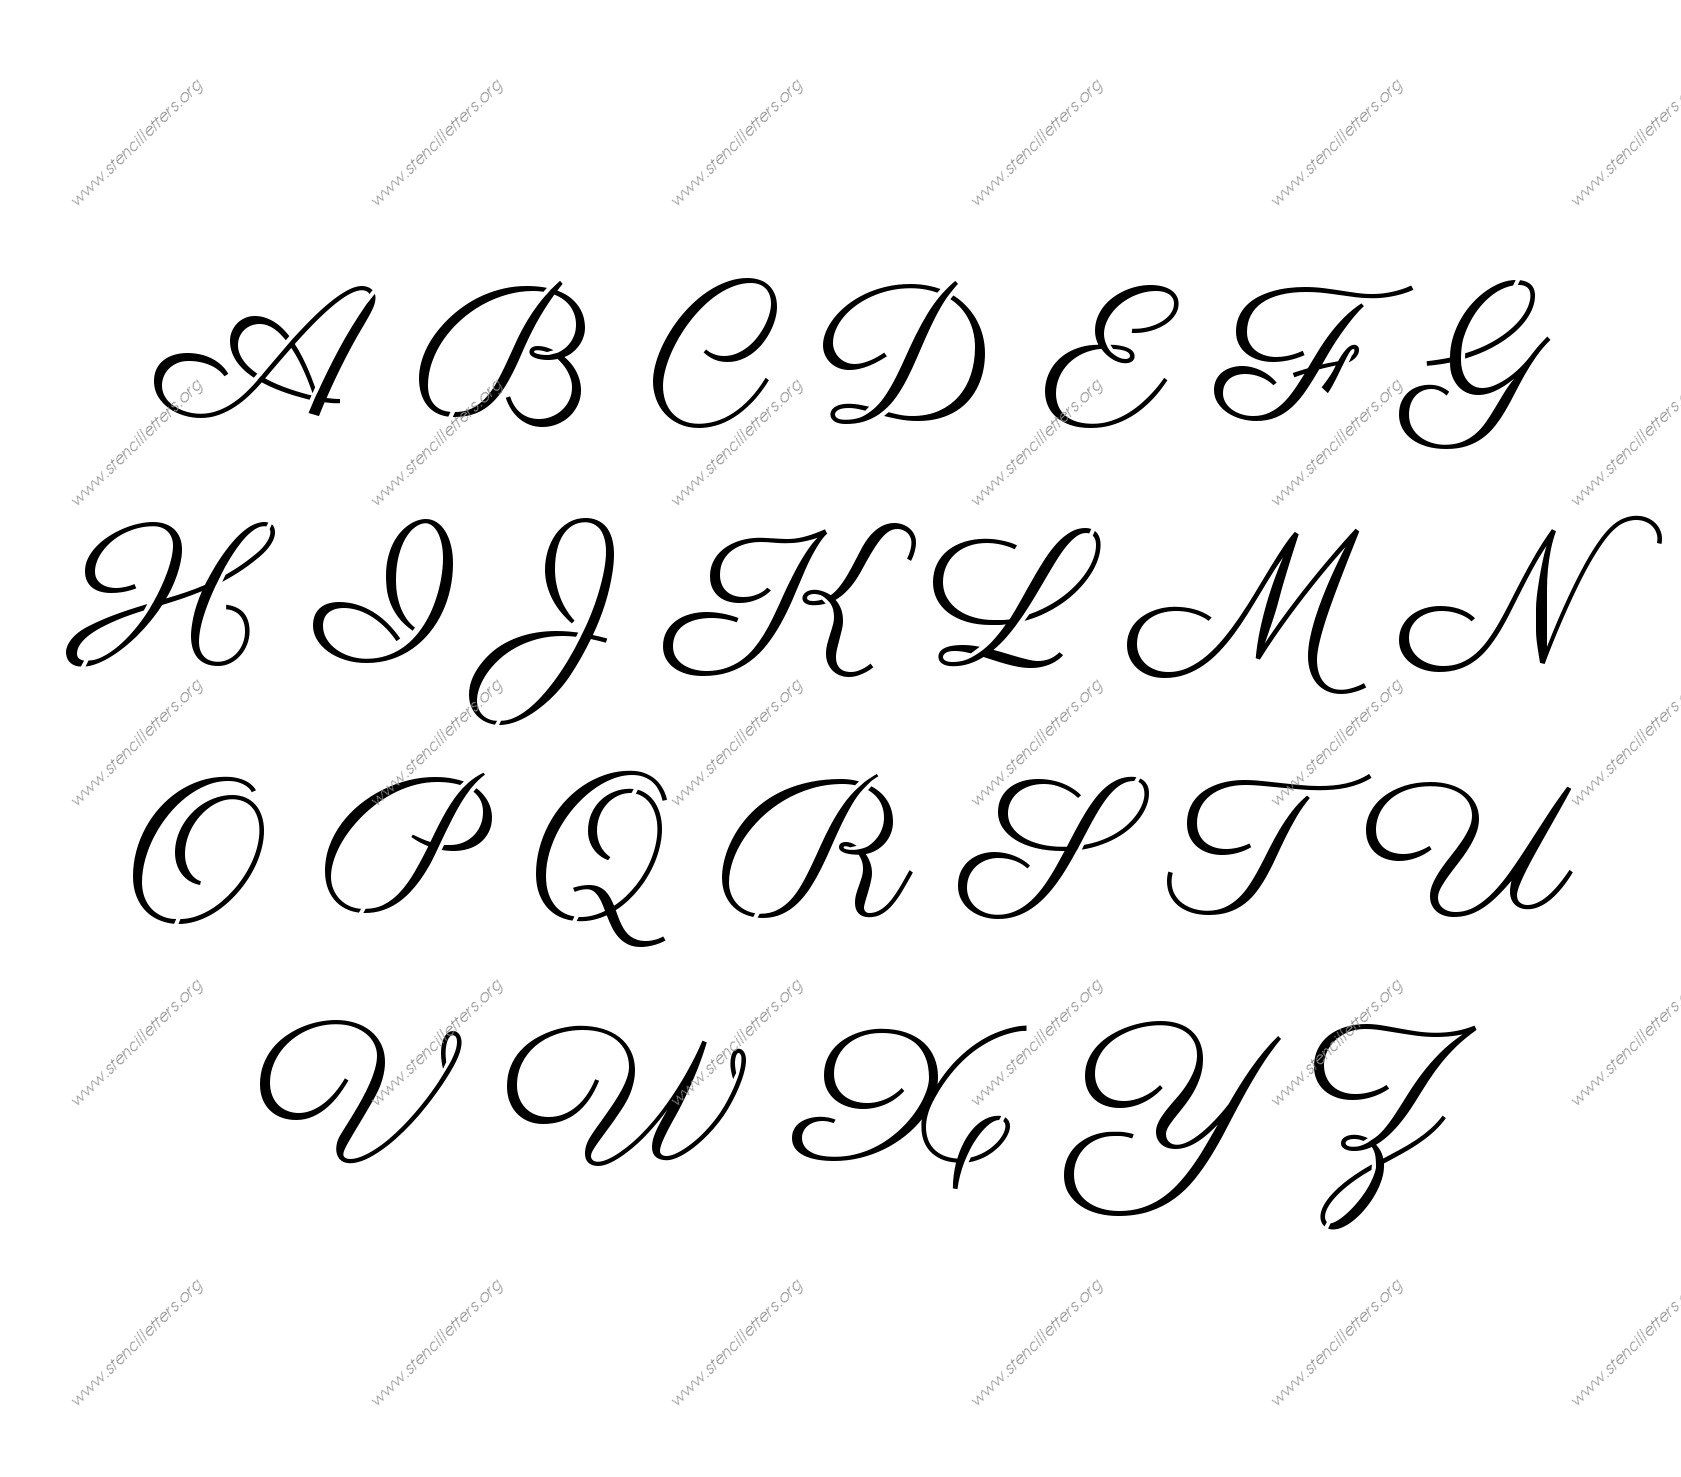 Free Printable Alphabet Stencil Letters Template   Art & Crafts - Free Printable Calligraphy Letter Stencils